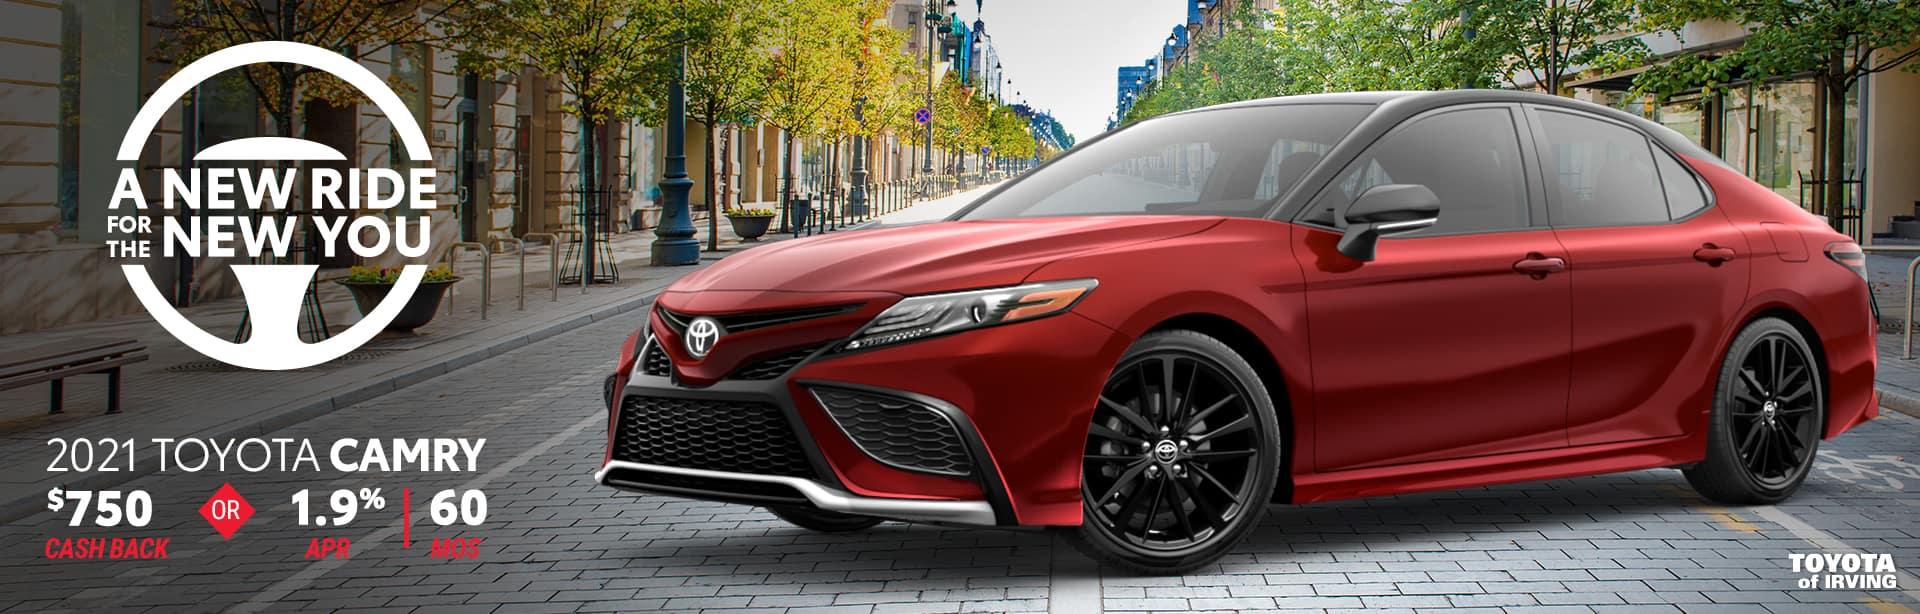 2021 Toyota Camry Offer